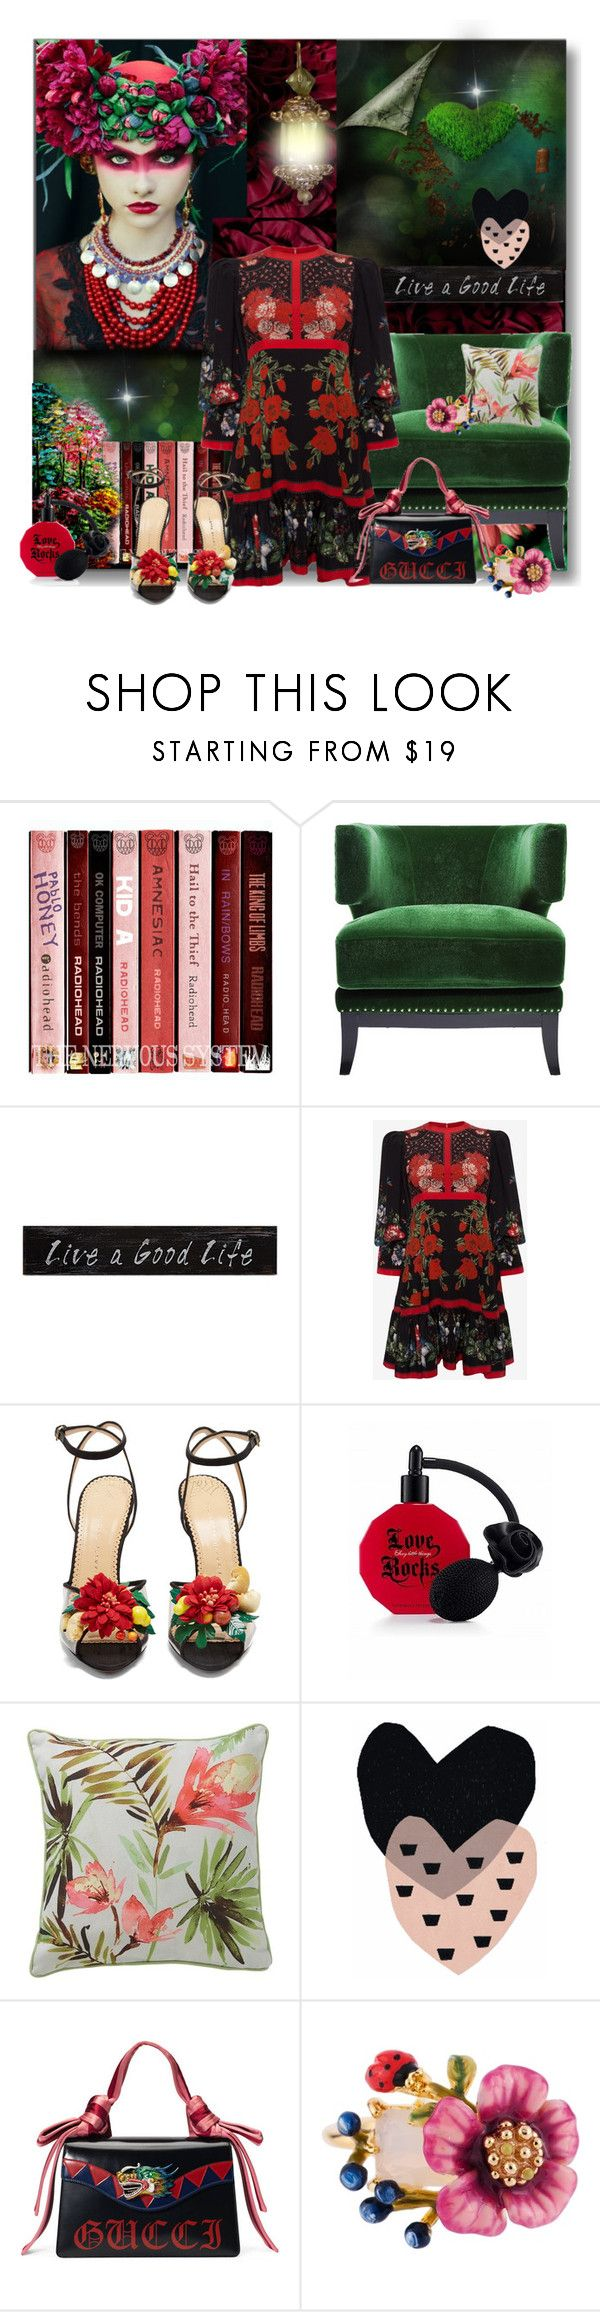 """Live A Good Life......"" by nz-carla ❤ liked on Polyvore featuring KARE, Creative Co-op, Alexander McQueen, Charlotte Olympia, Victoria's Secret, Seventy Tree, Gucci and Les Néréides"